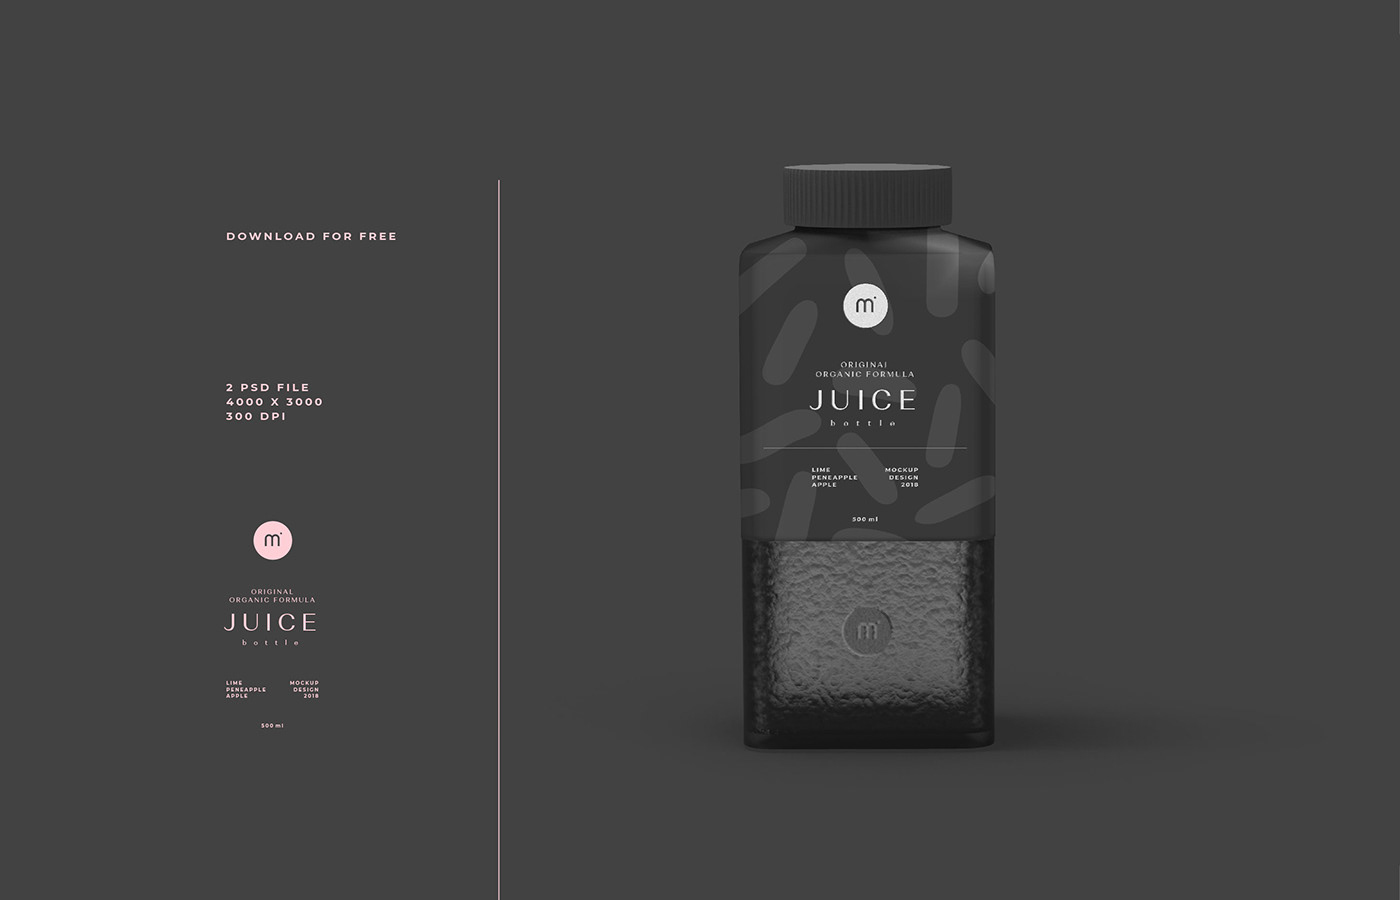 Free-Juice-Bottle-Mockup-PSD-2018-2